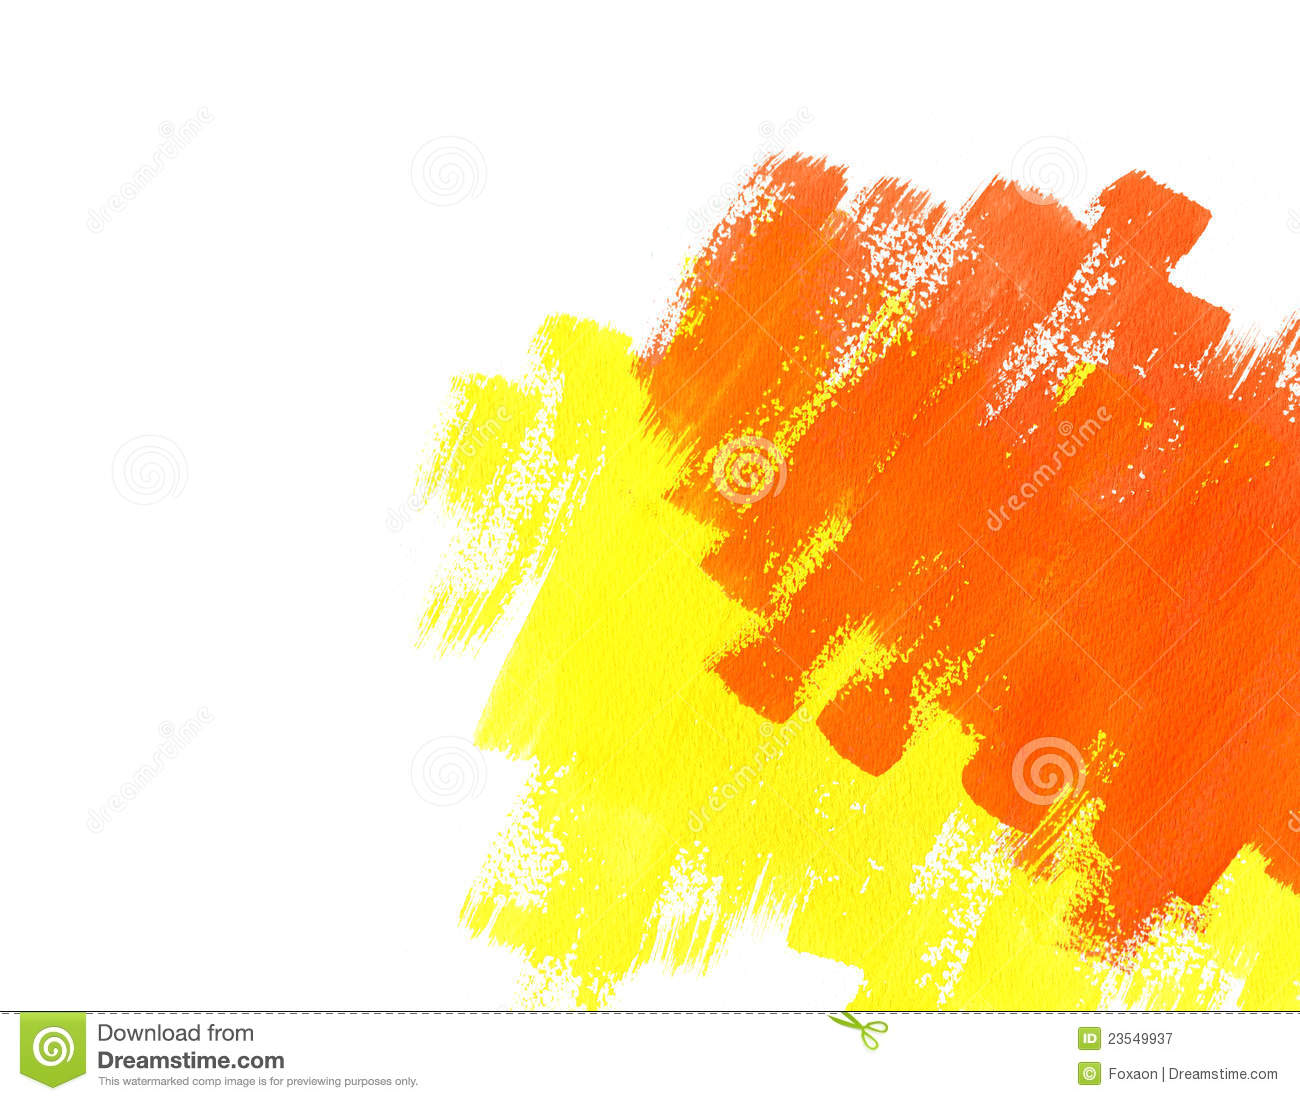 Color Paint red and yellow water color paint texture royalty free stock image